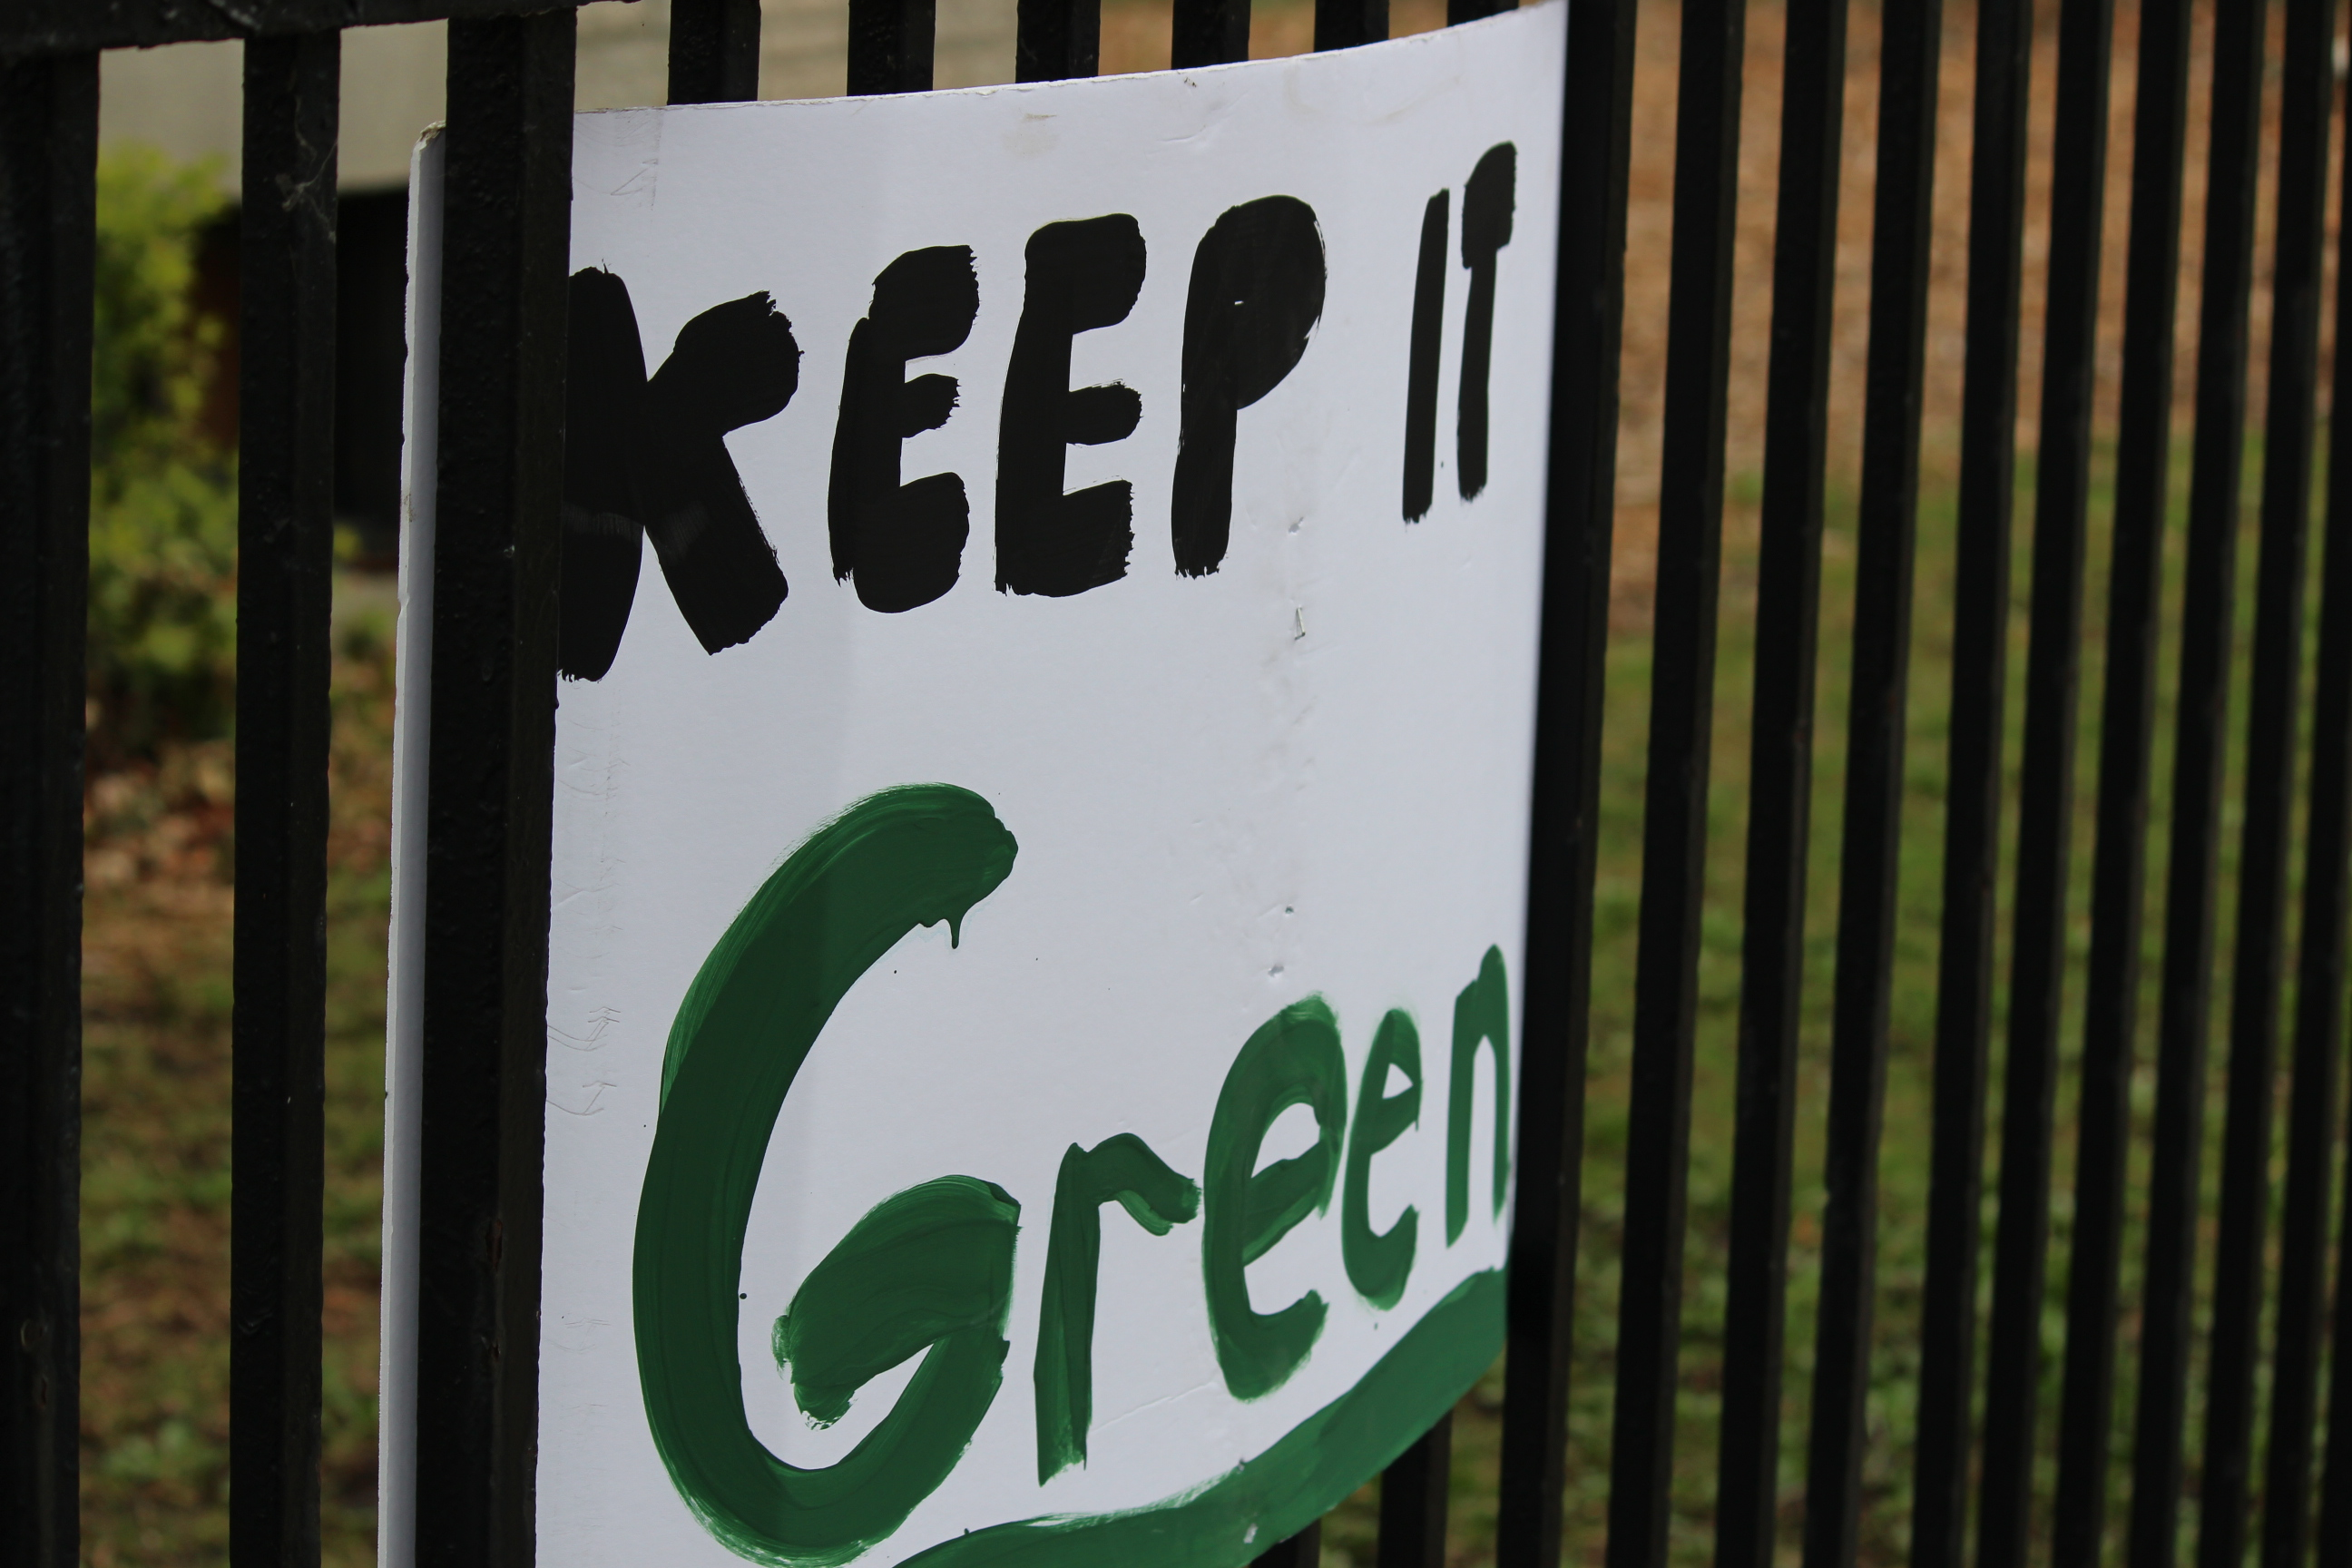 Protest signs hung up along one of the fences at Willistead Park in Windsor on May 3, 2014. (Photo by Ricardo Veneza)